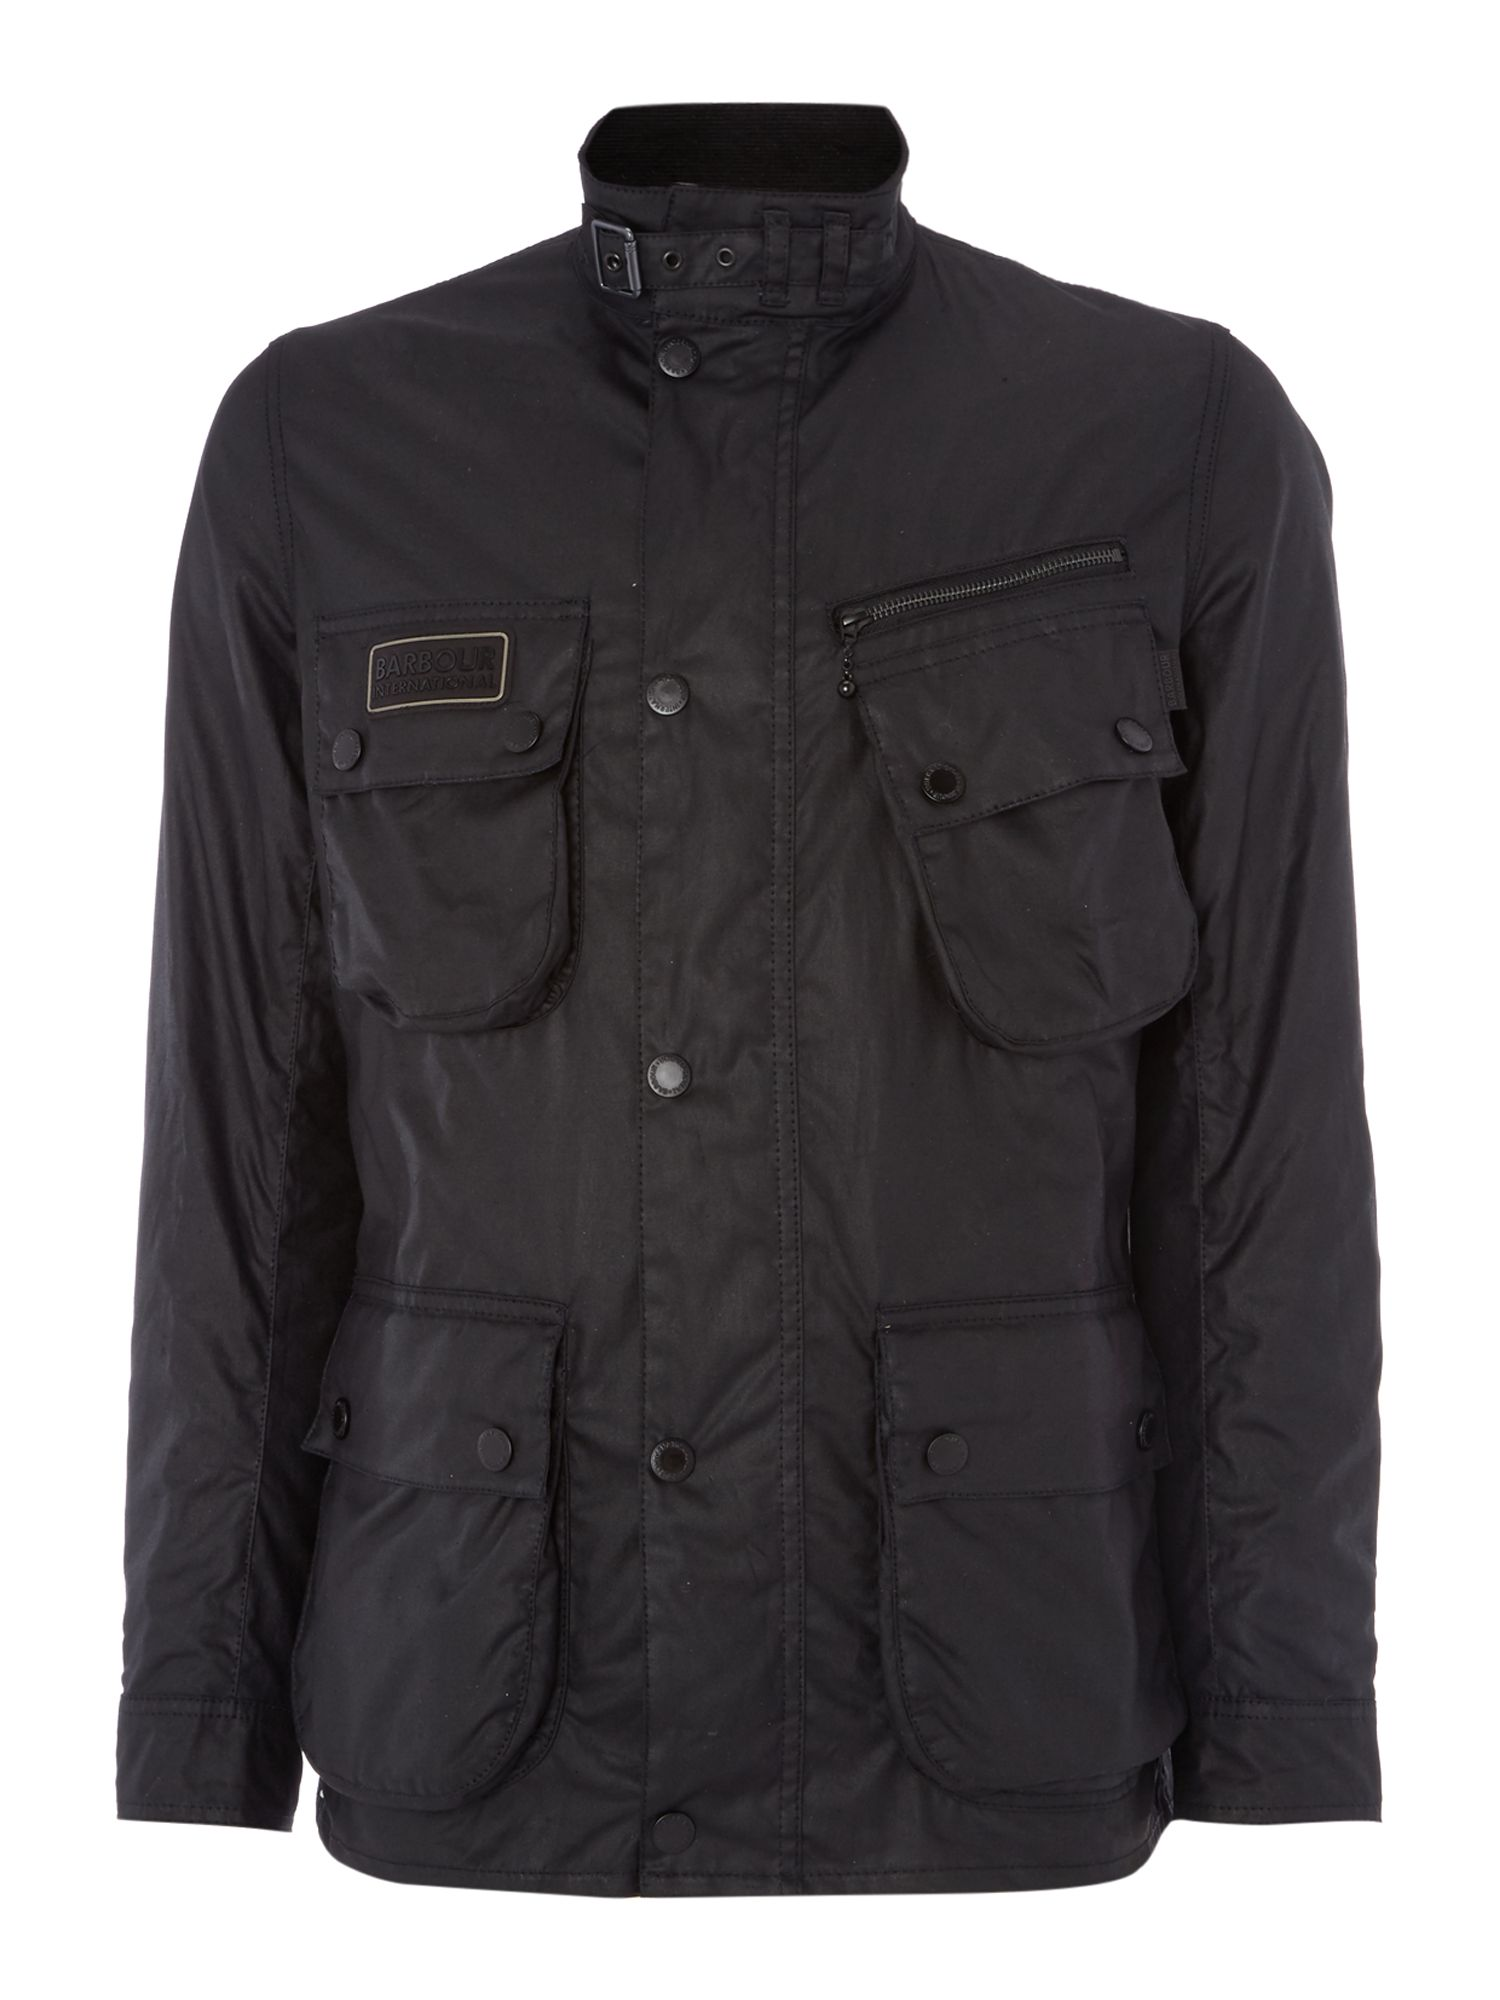 Mens Barbour International wax jacket Black